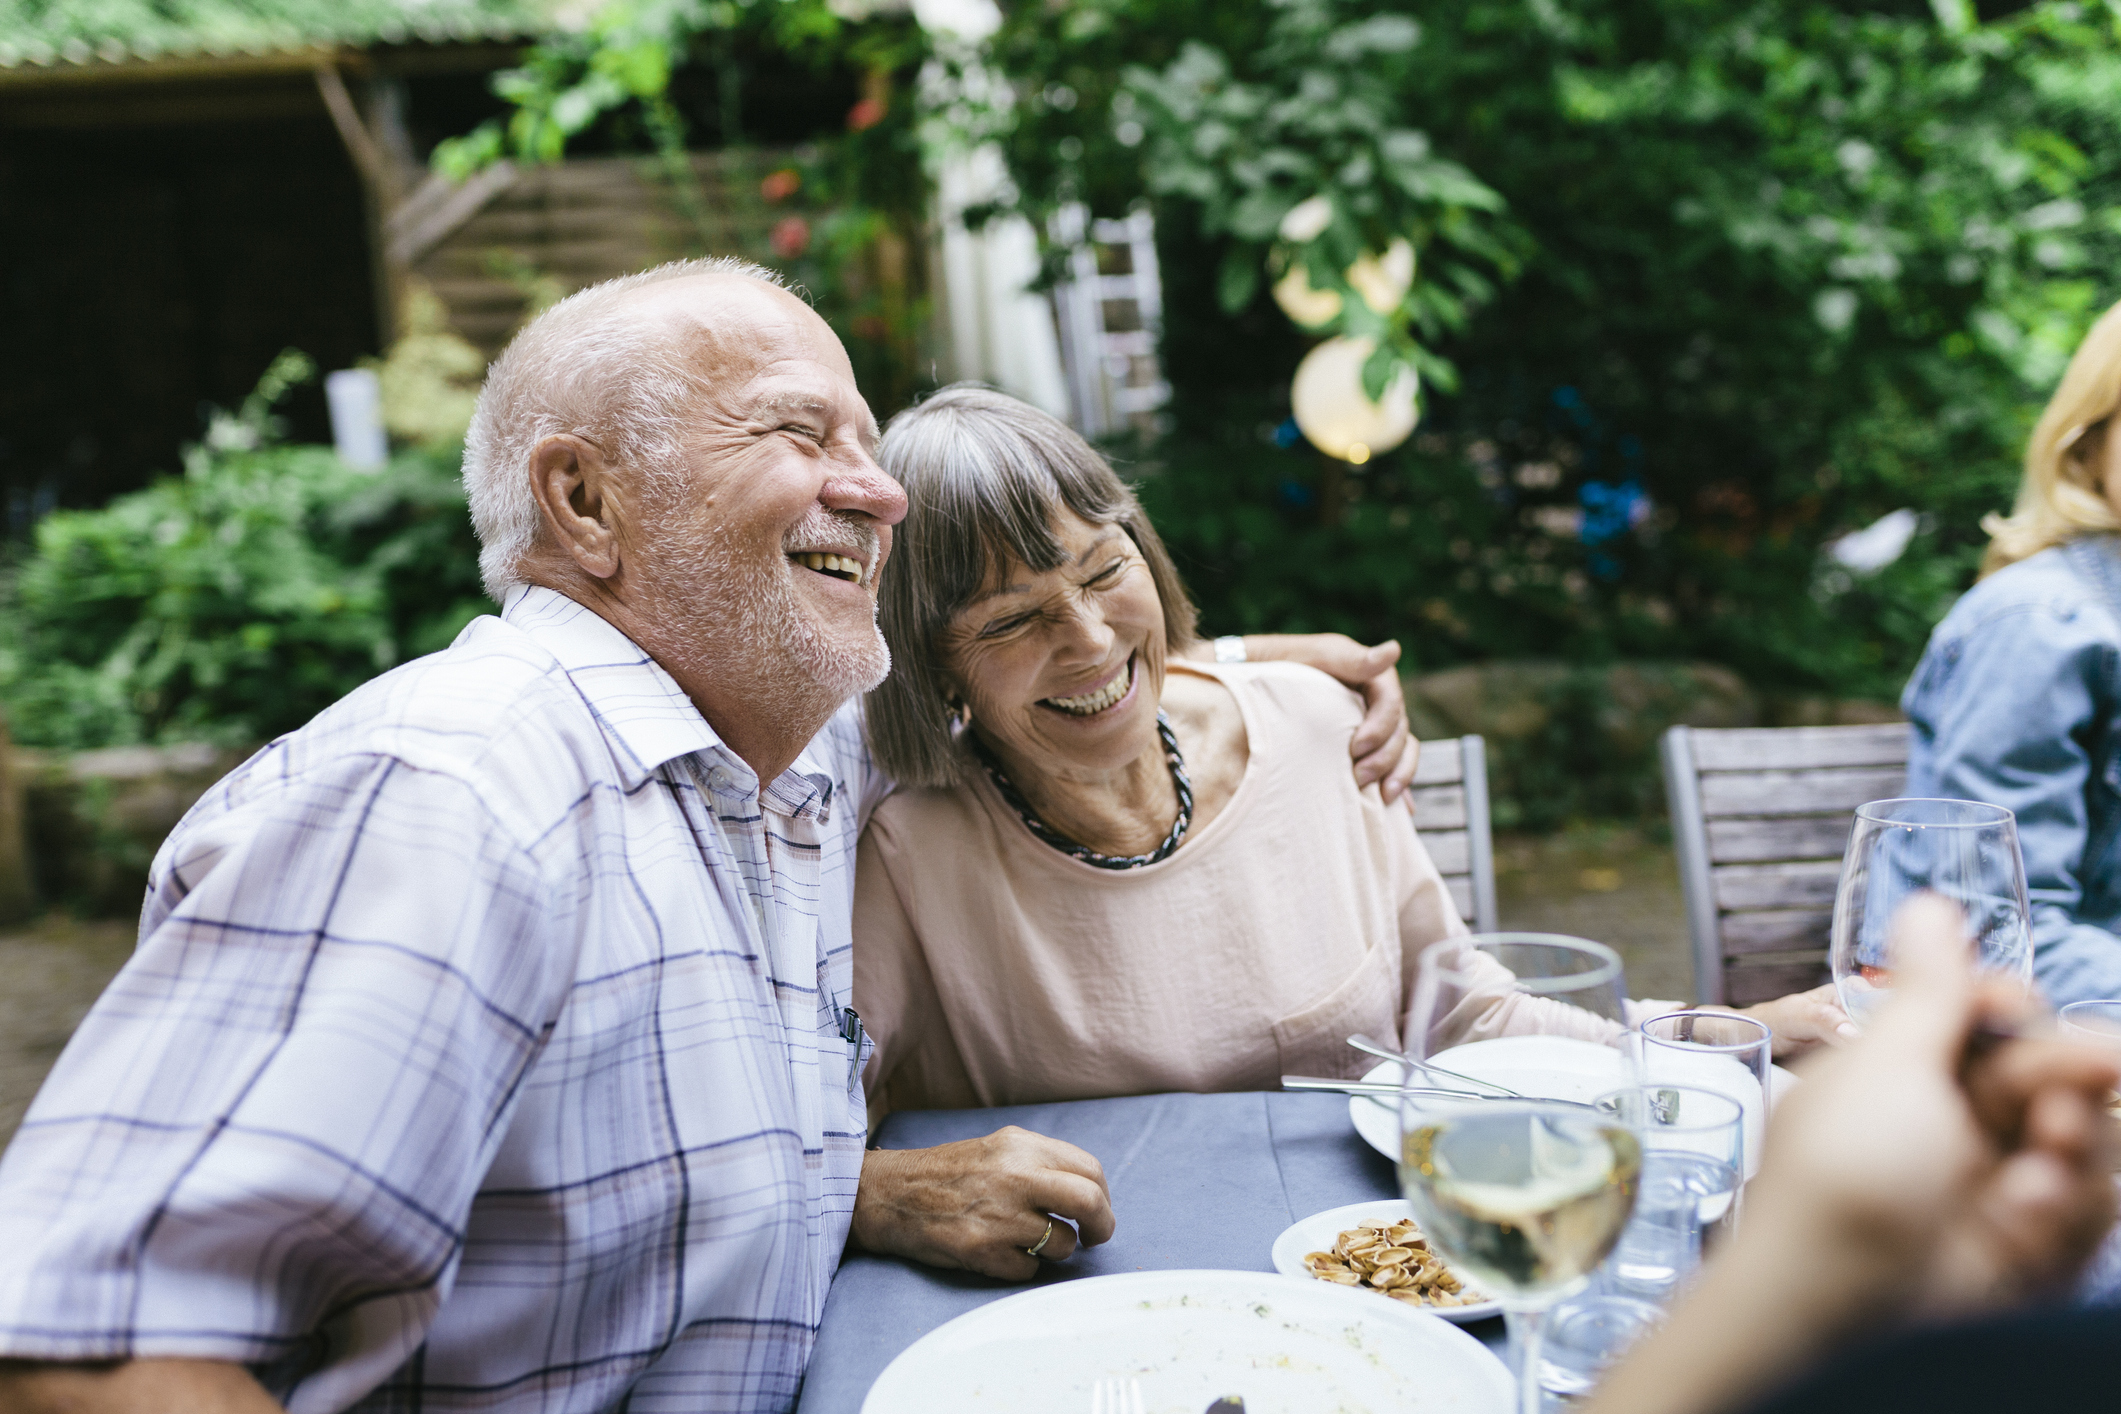 Elderly Couple Enjoying Outdoor Meal With Family (Getty Images)